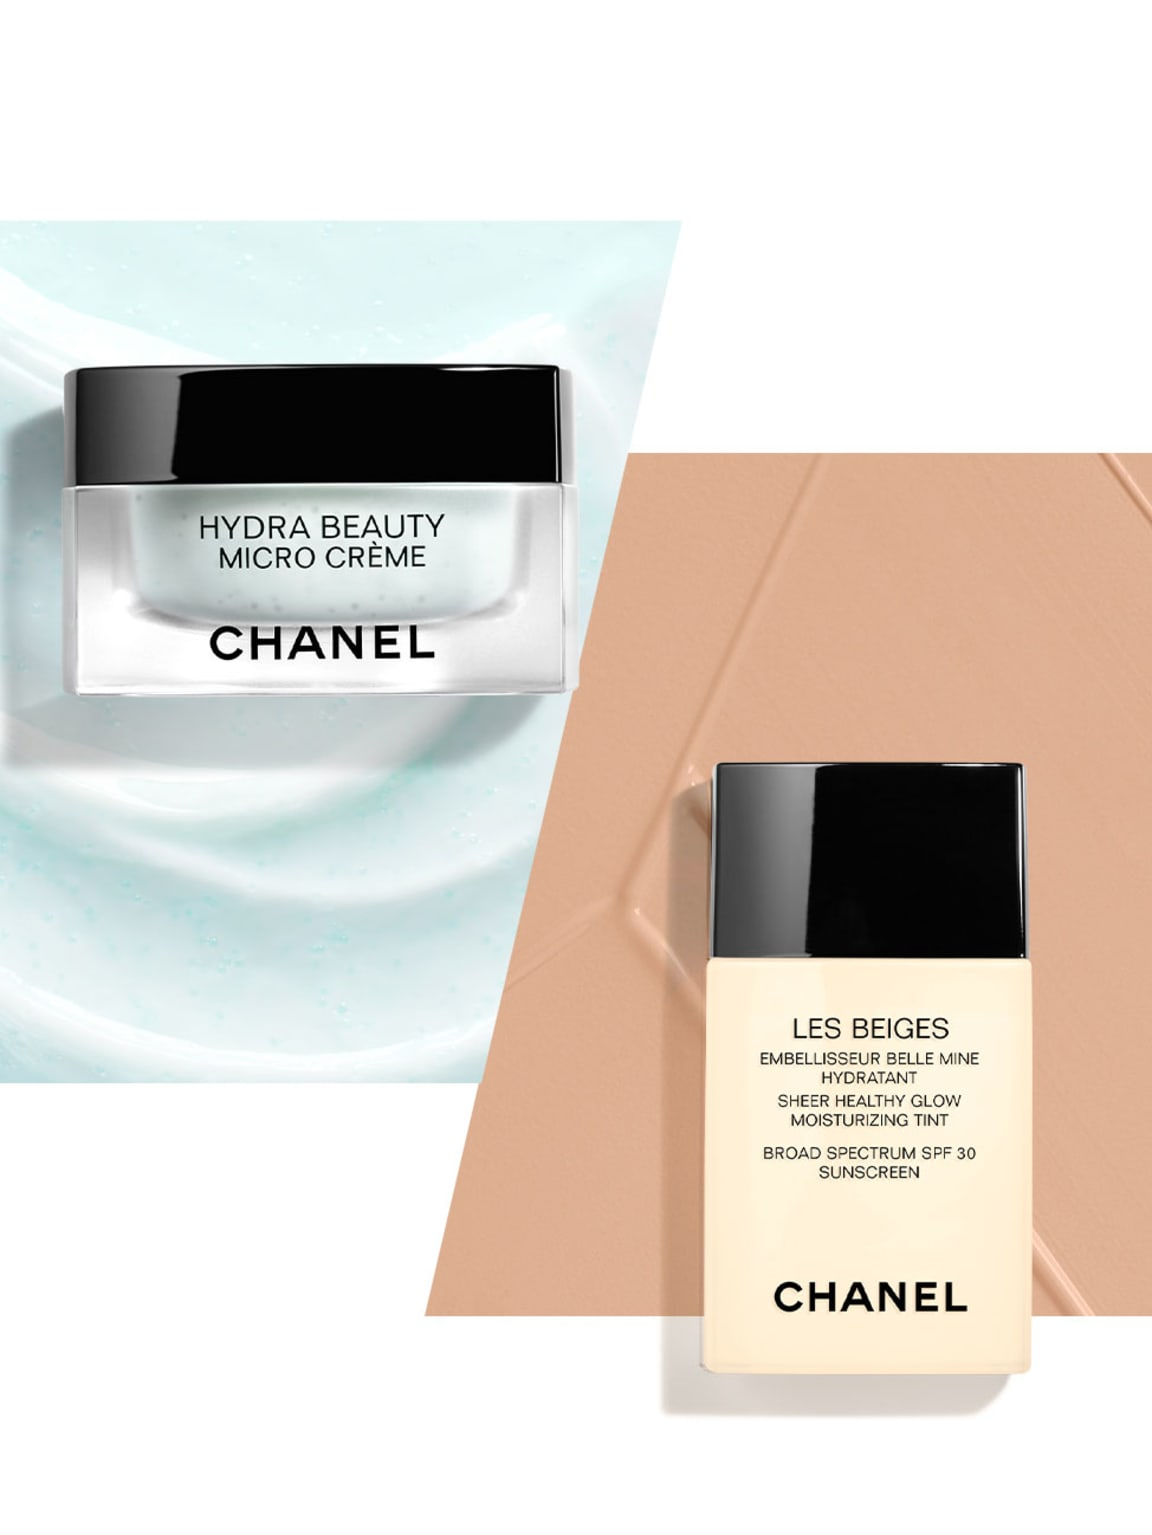 Hydra Beauty Micro Crème Fortifying Replenishing Hydration Chanel